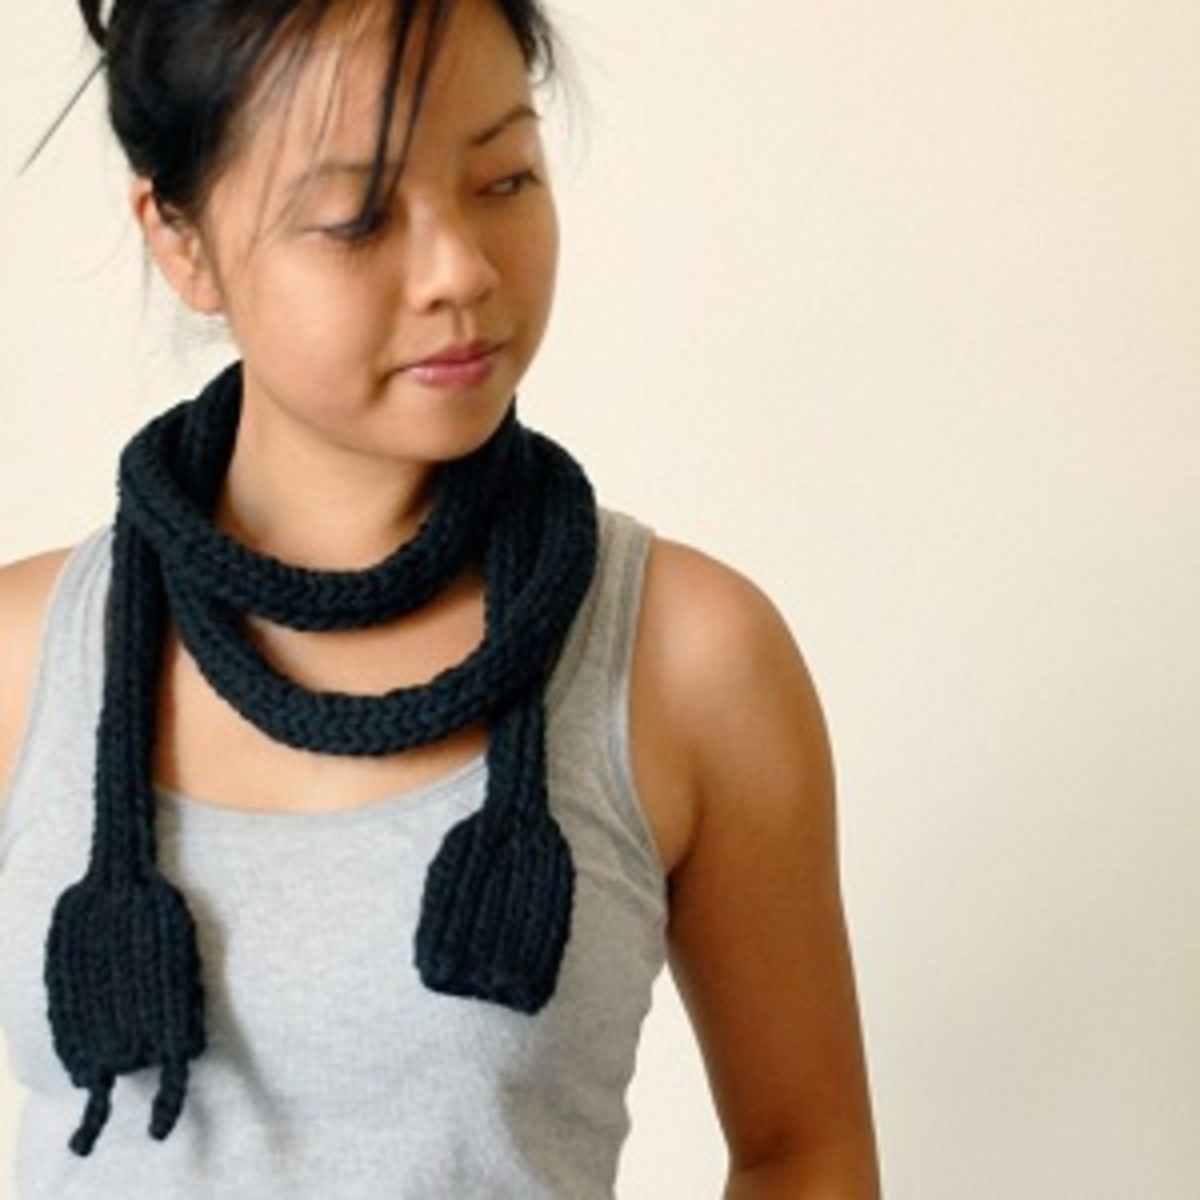 A crocheted power cord is quirky and cute.